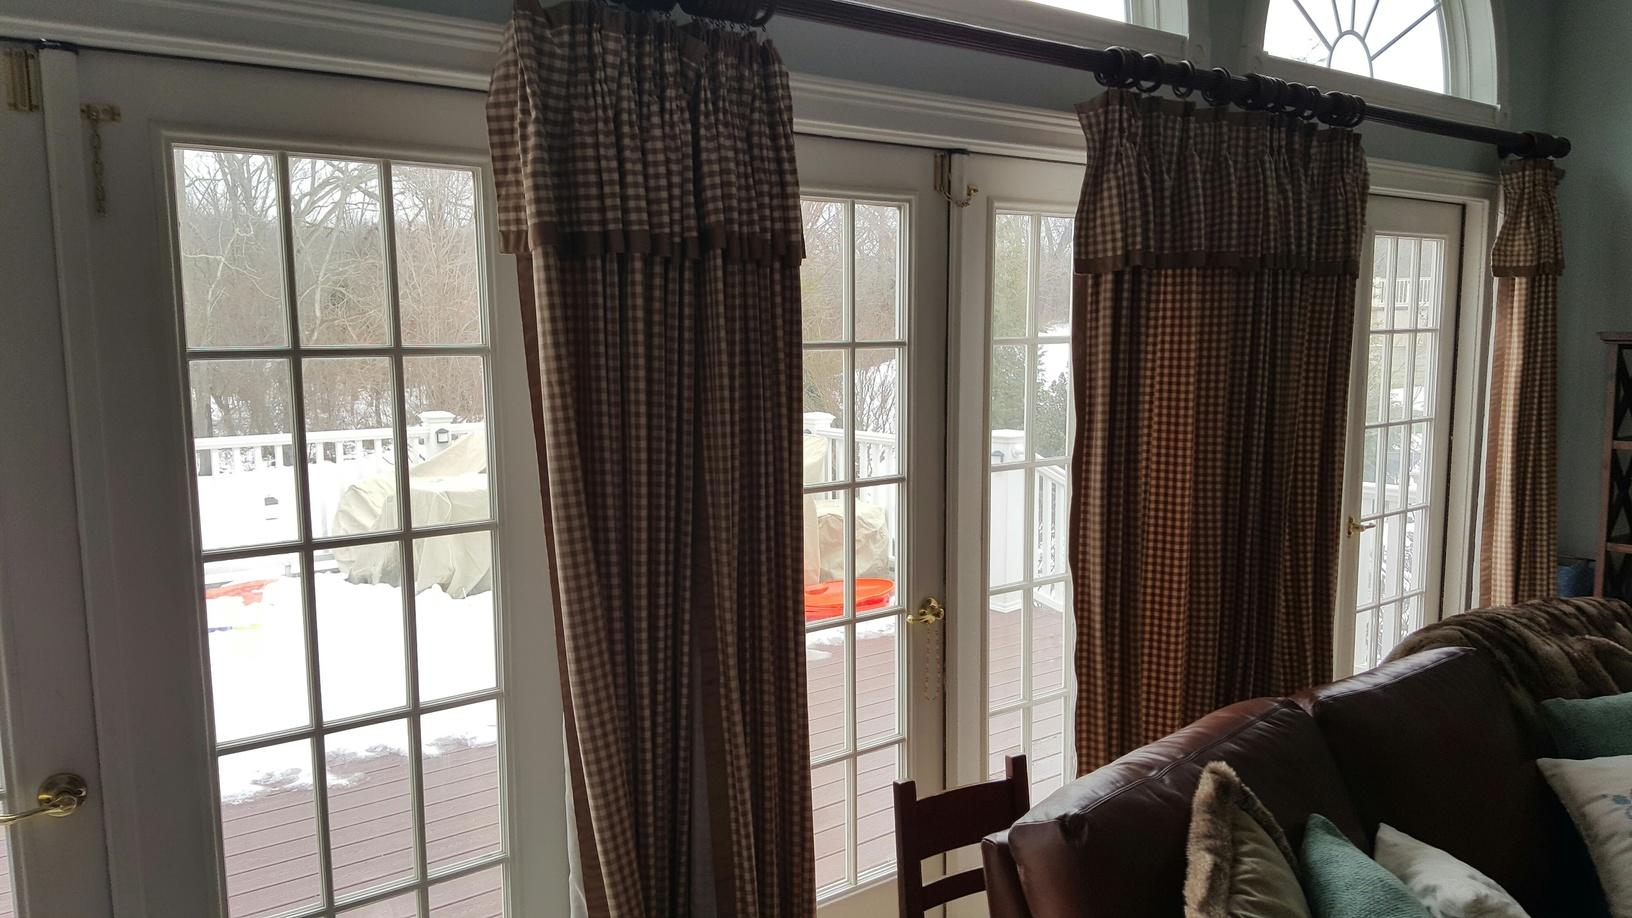 Custom French Outswing Patio Doors with Colonial Grids, Aged Bronze Hardware, Snow White Interior, Coal Black Exterior Installed in Swedesboro, NJ - Before Photo